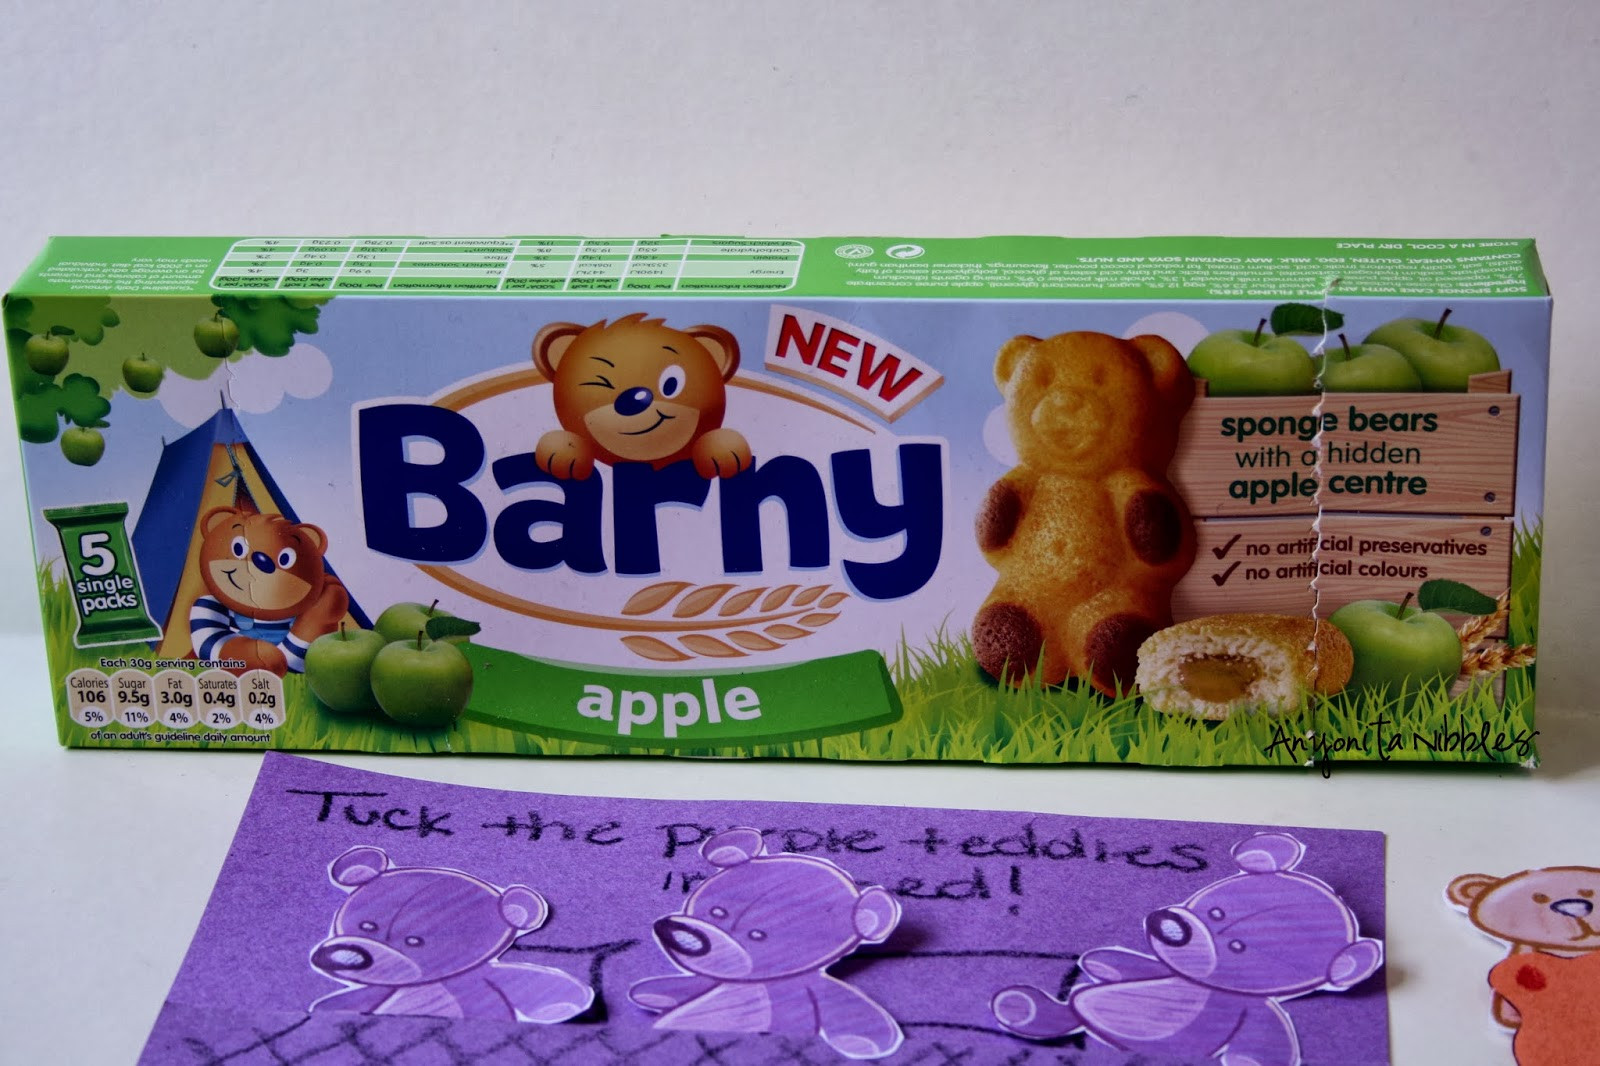 Sponsored by Barny Bears